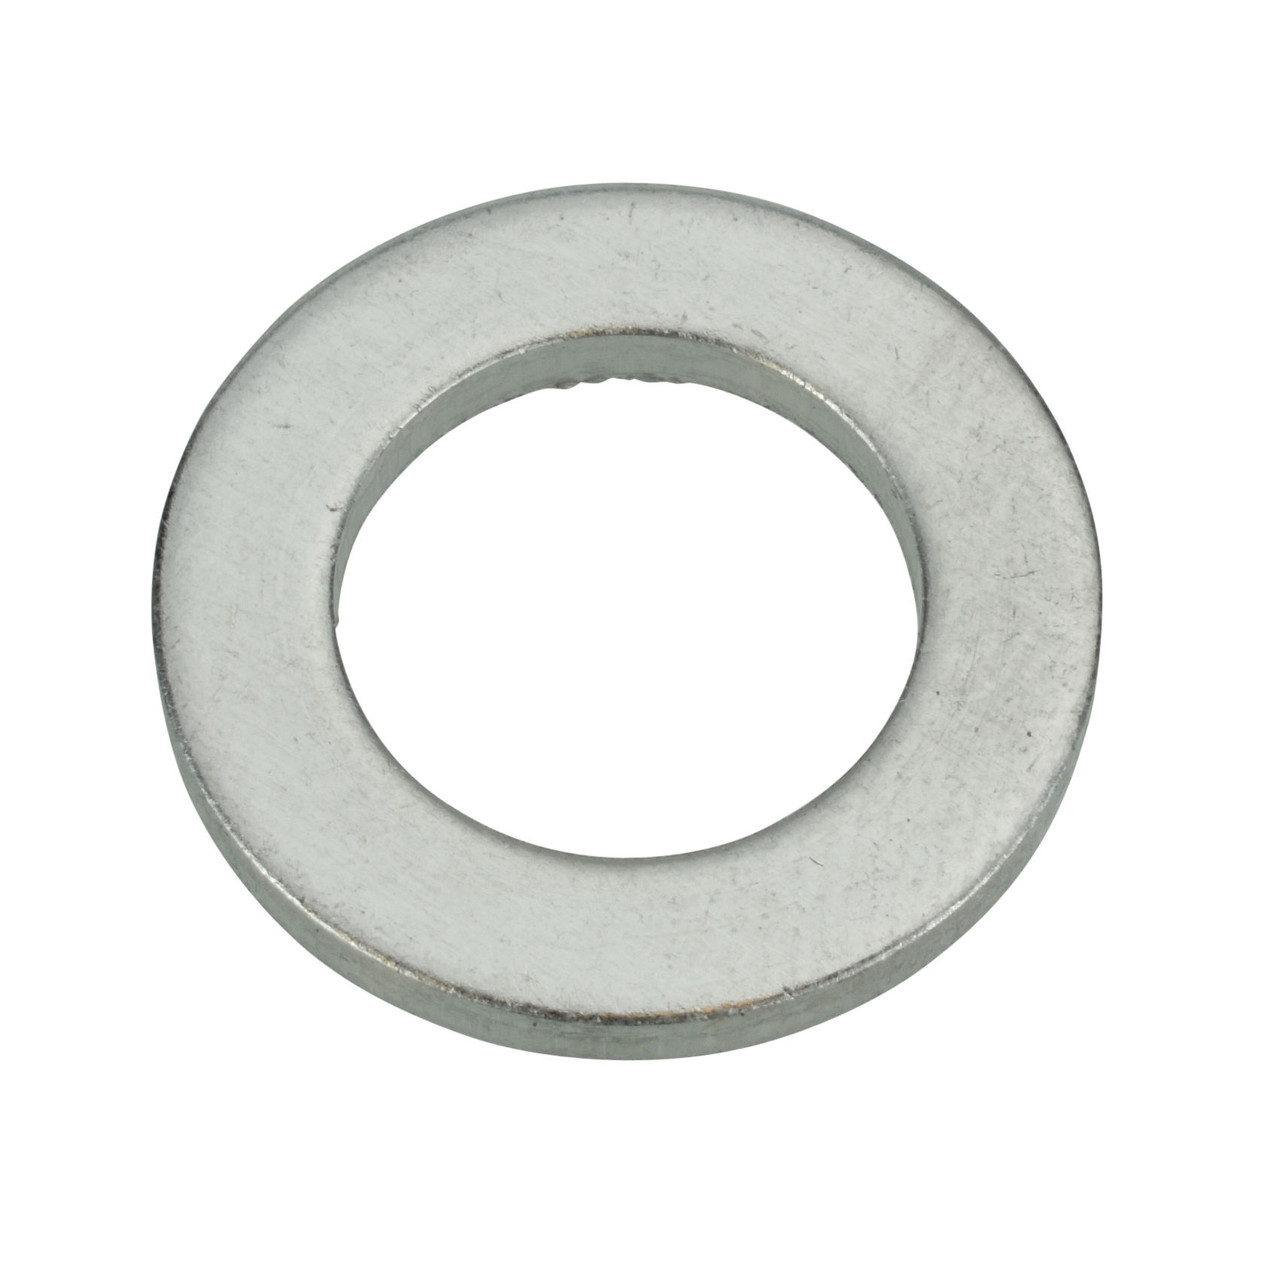 M12 Aluminum Oil Drain Plug Gasket - Interchanges: Honda 94109-12000